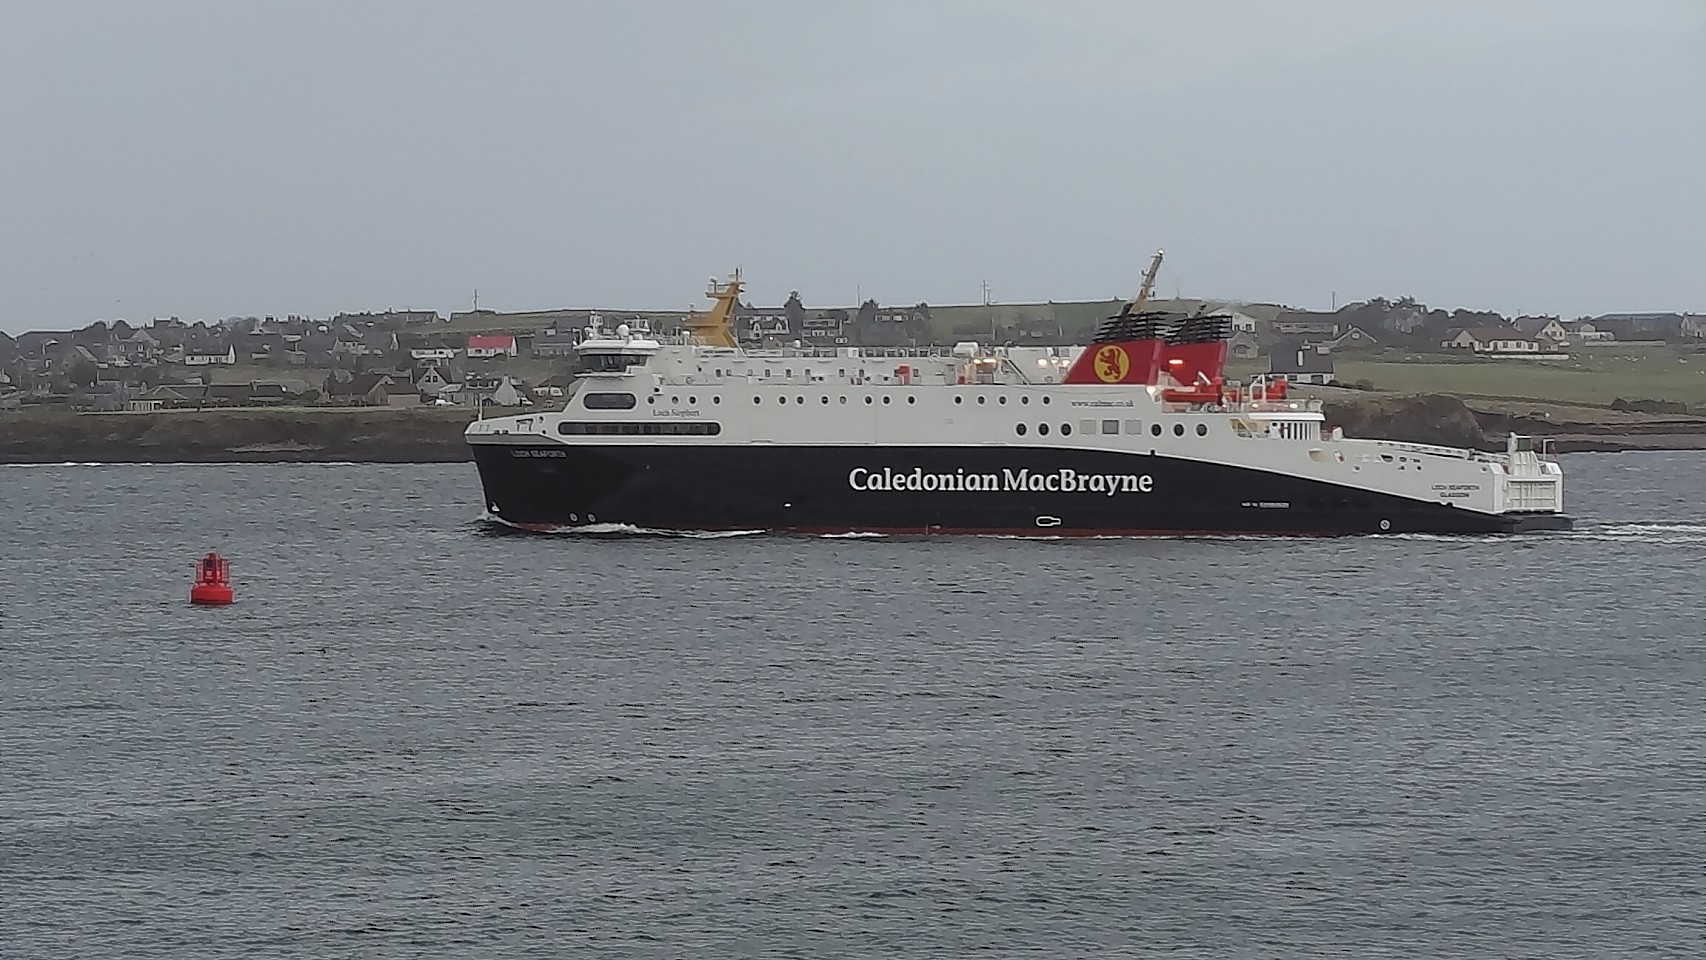 The MV Loch Seaforth